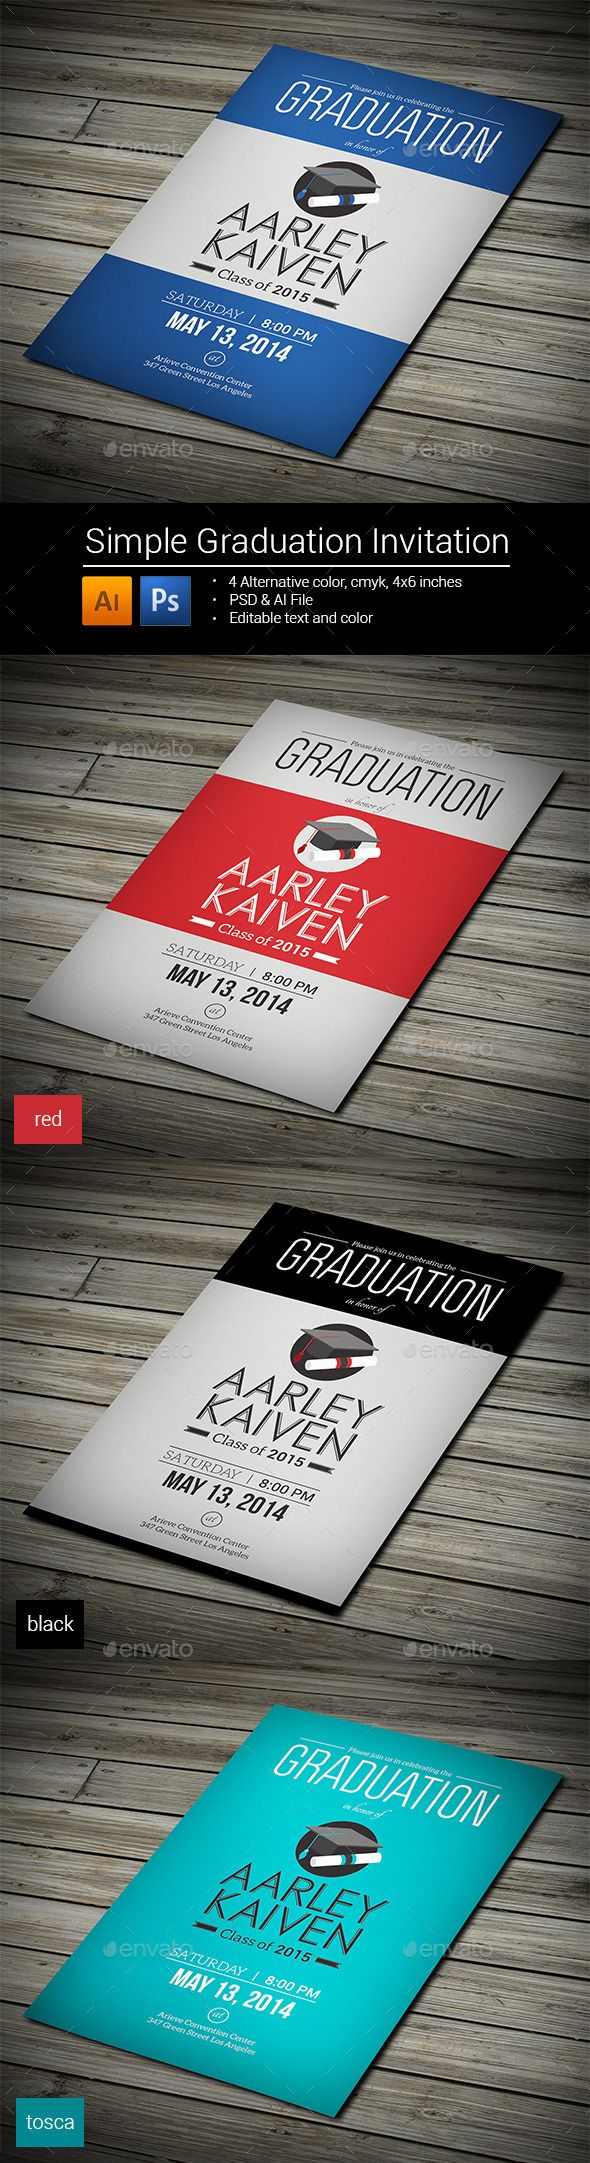 business event invitation templates%0A Simple Graduation Invitation  u     Photoshop PSD  simple  red  u     Available here      https